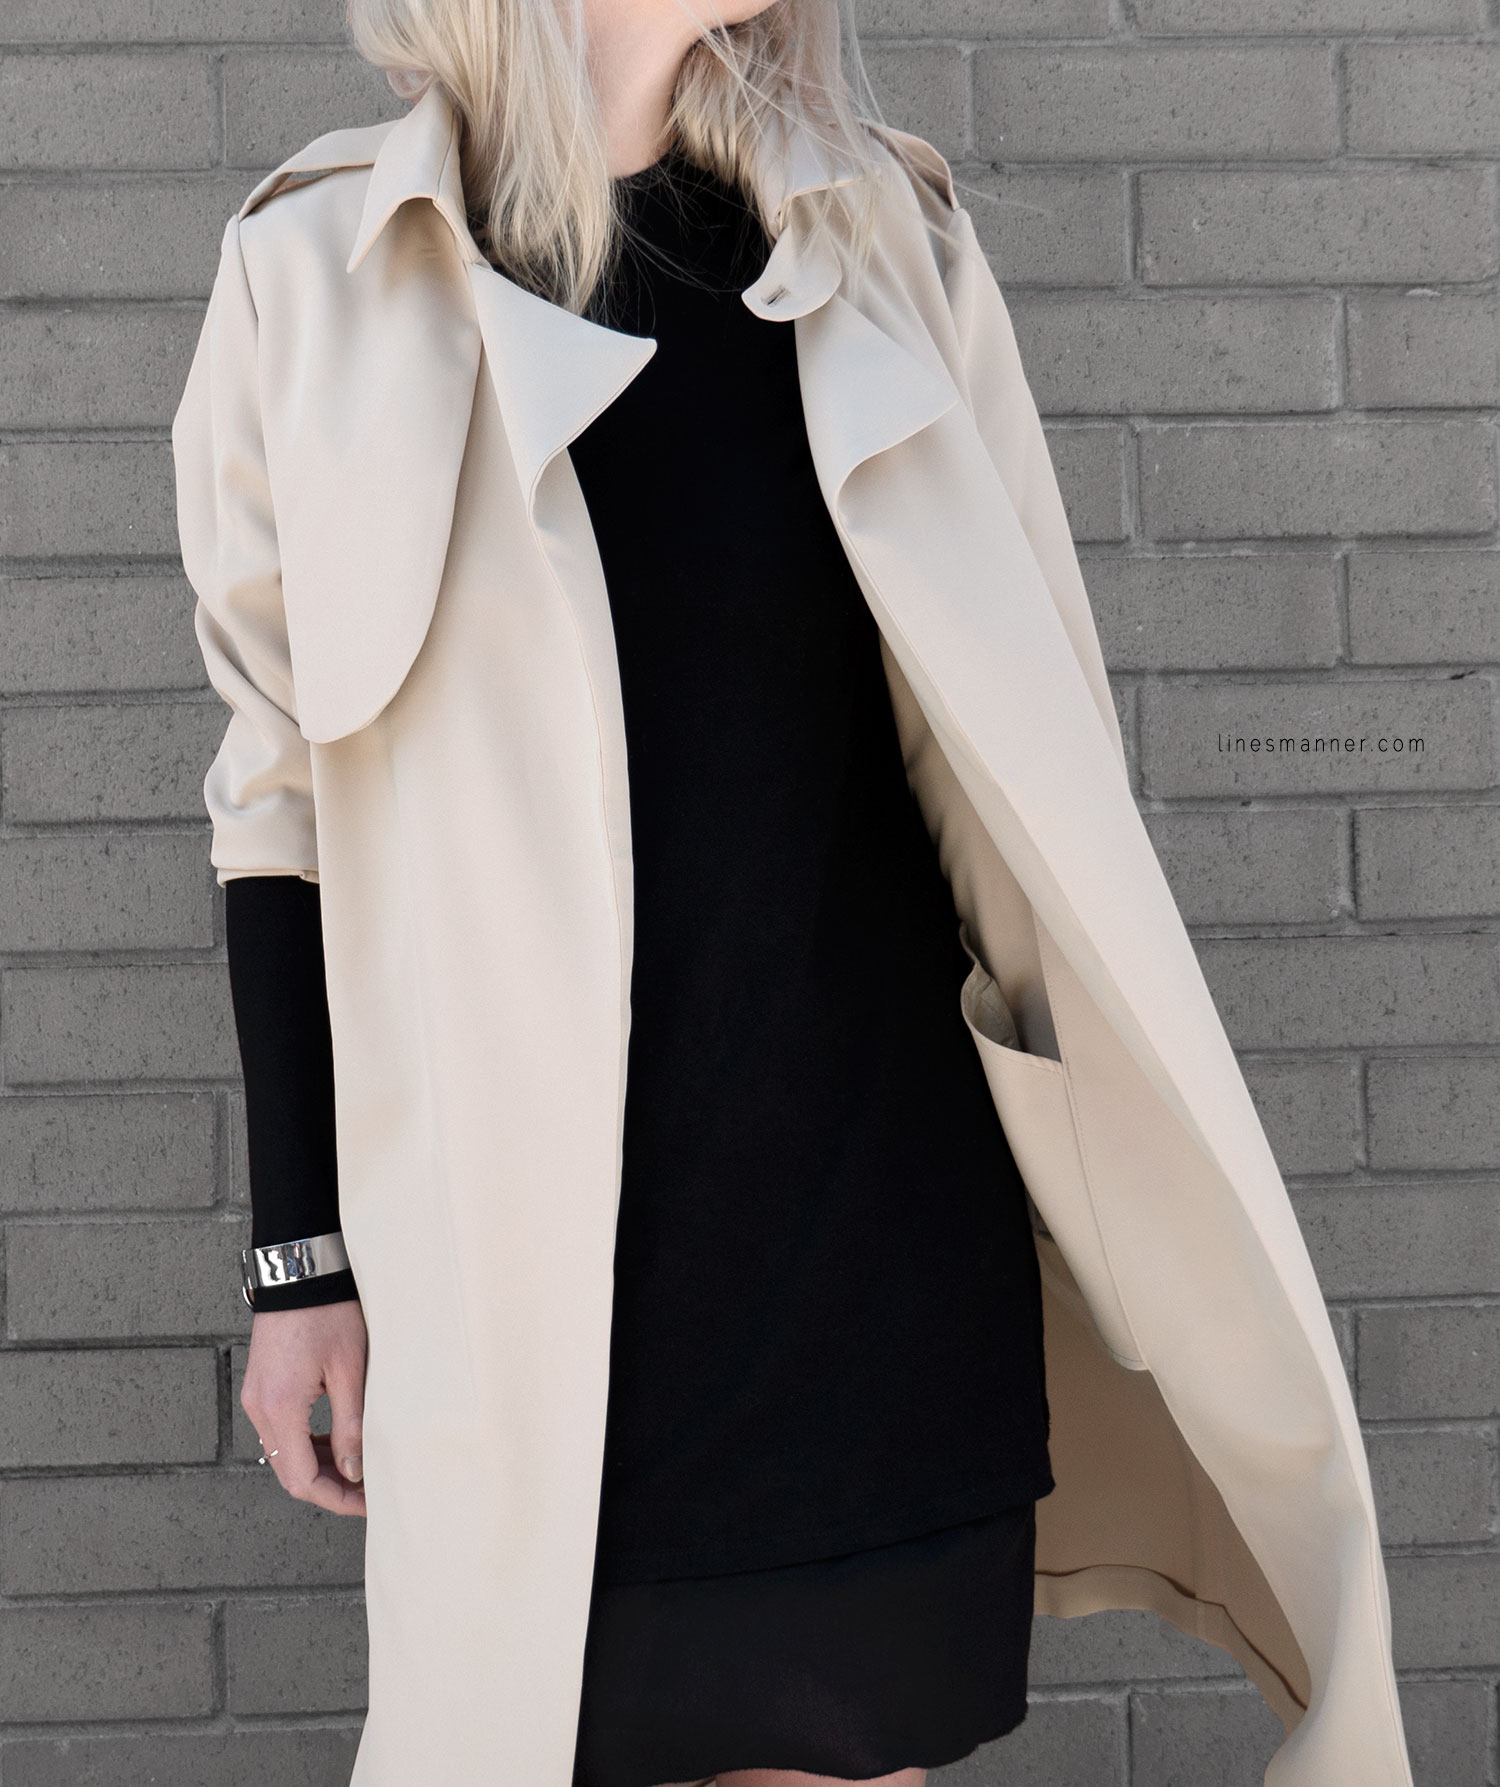 Lines-Manner-Trench-Minimal-Outfits-Fashion-Essentials-Classics-Timeless-Versatile-Details-Hues-Nonchalance-Elegance-Casual-Effortless-7